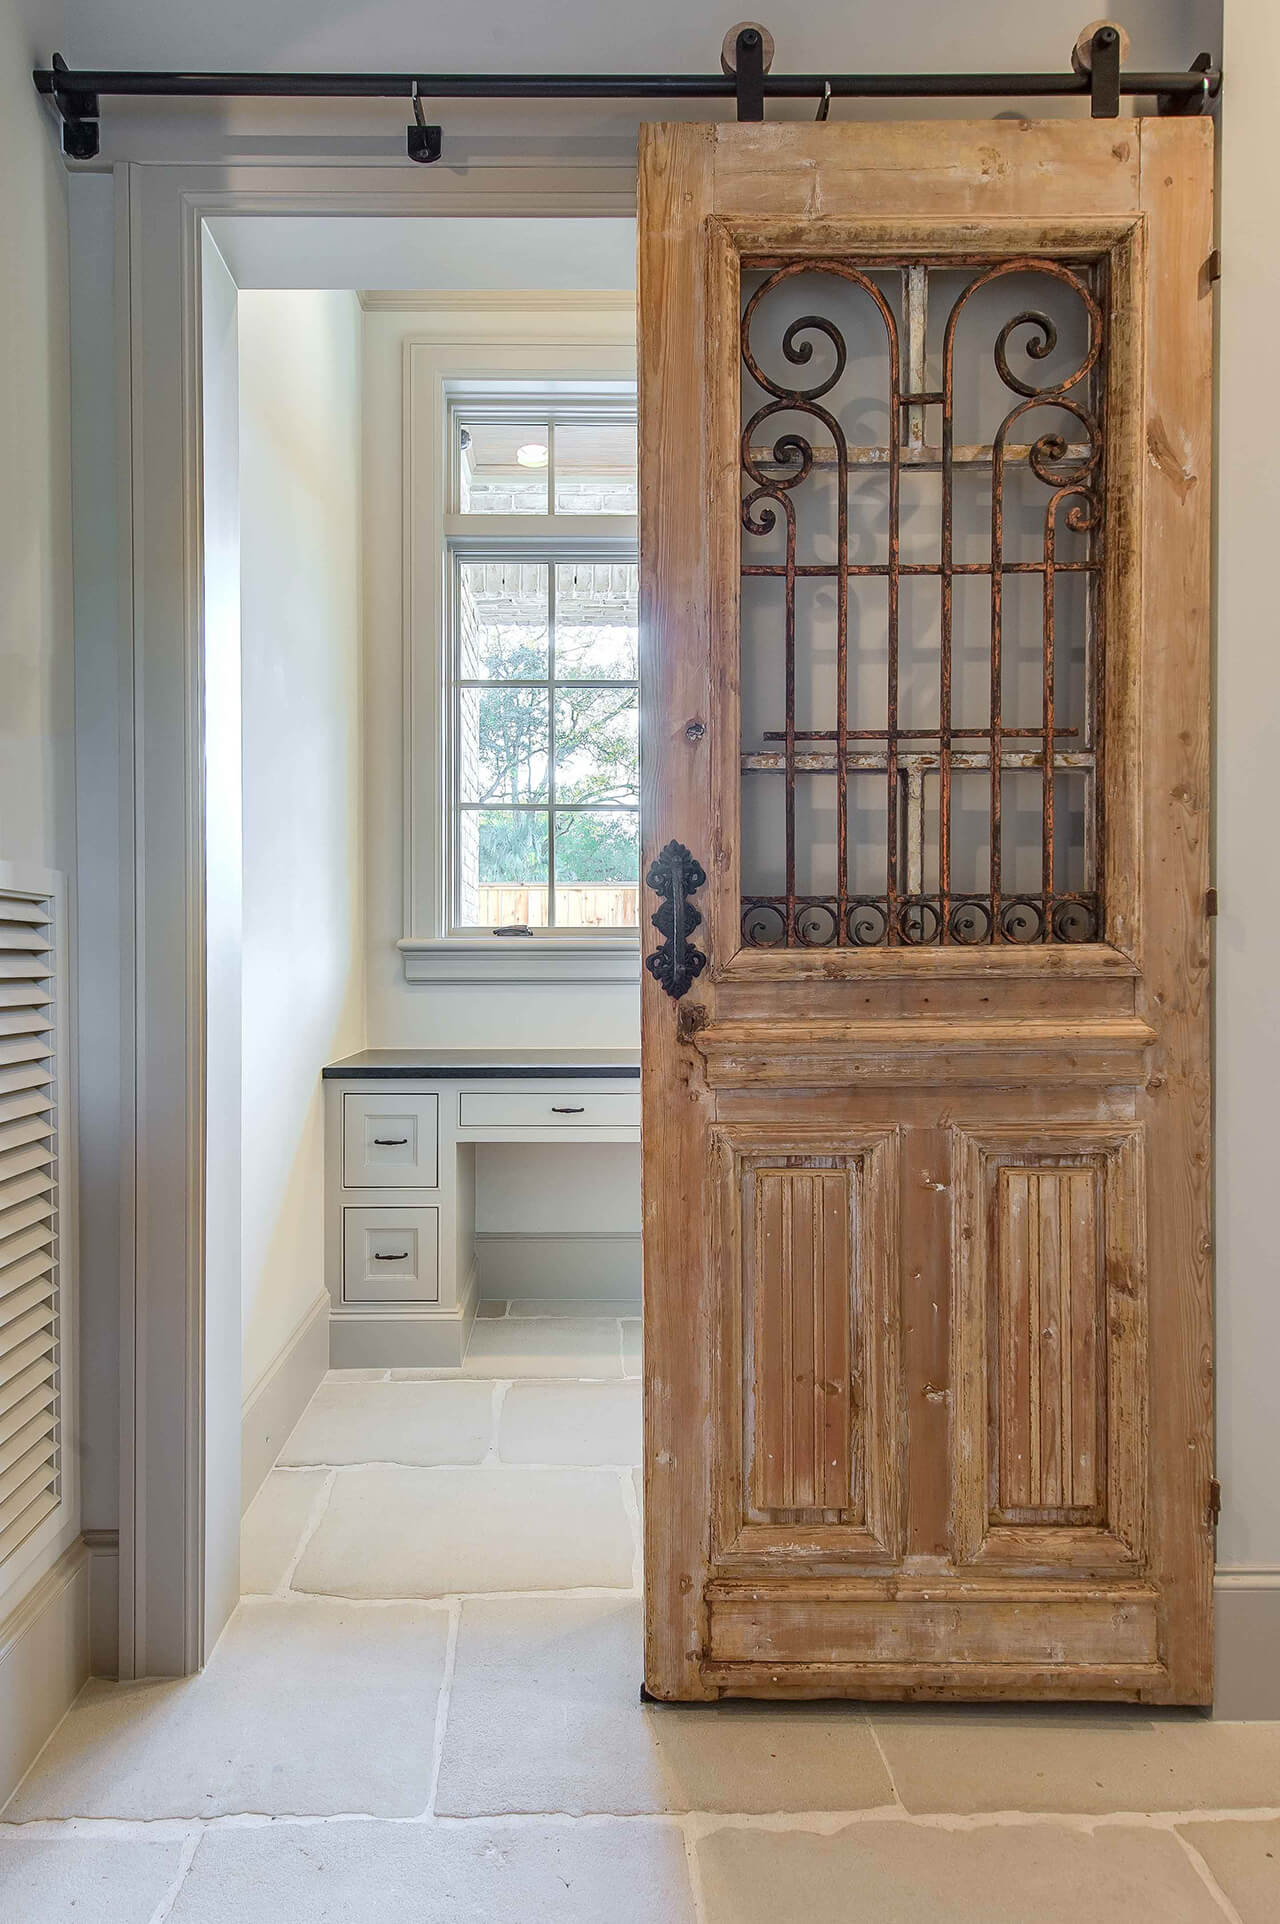 New takes on old doors 21 ideas how to repurpose old for Farm door ideas